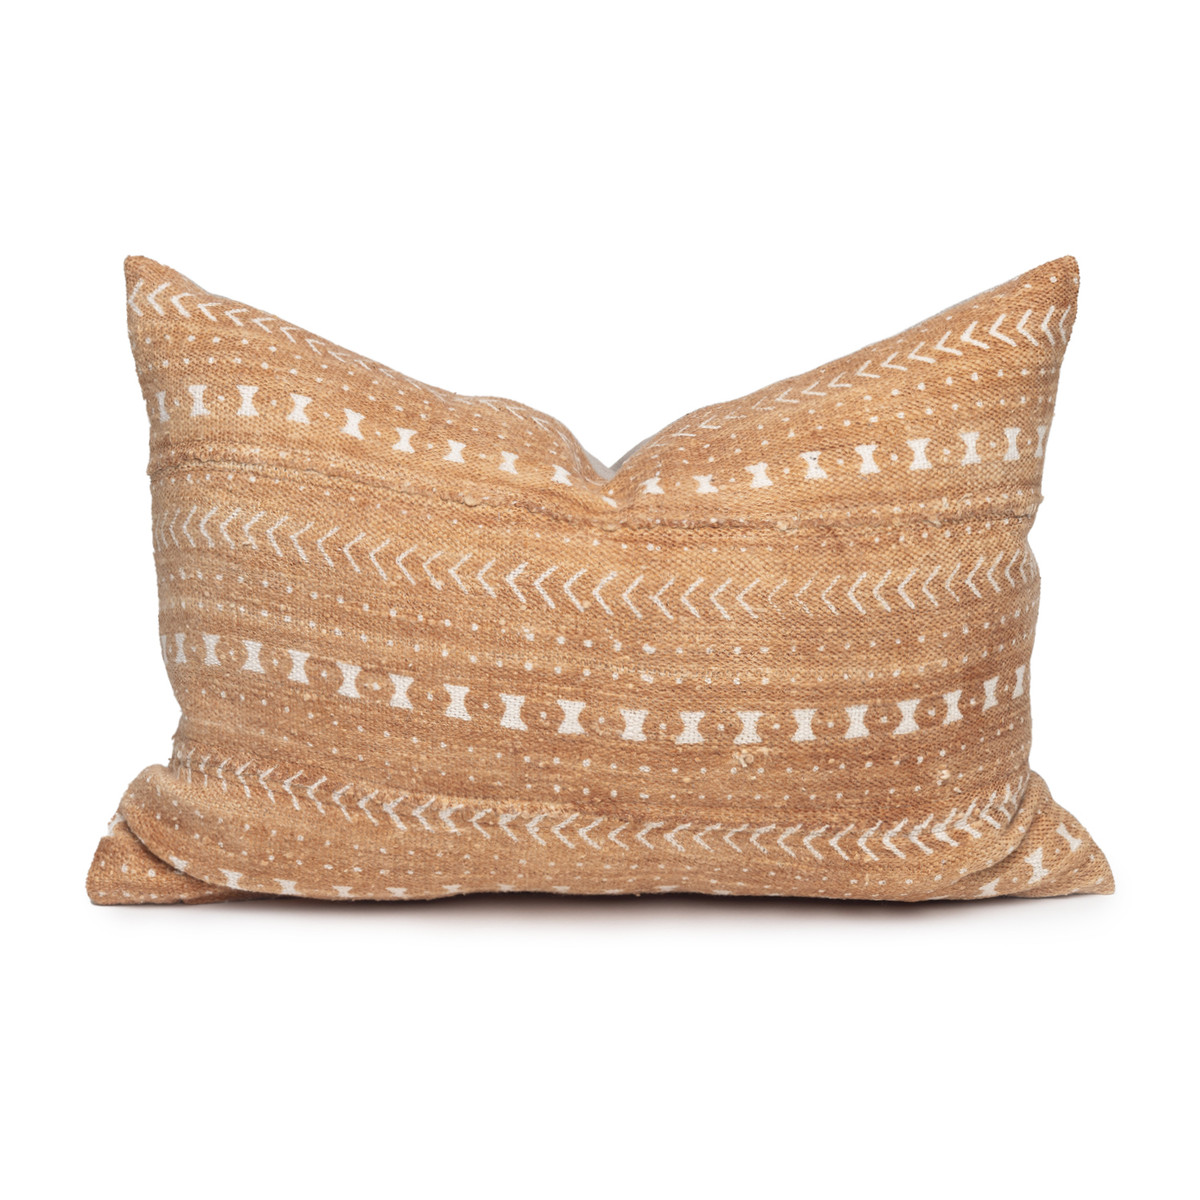 Trainer Lumbar Pillow in Printed cotton mud cloth- 16 x 22 - Front